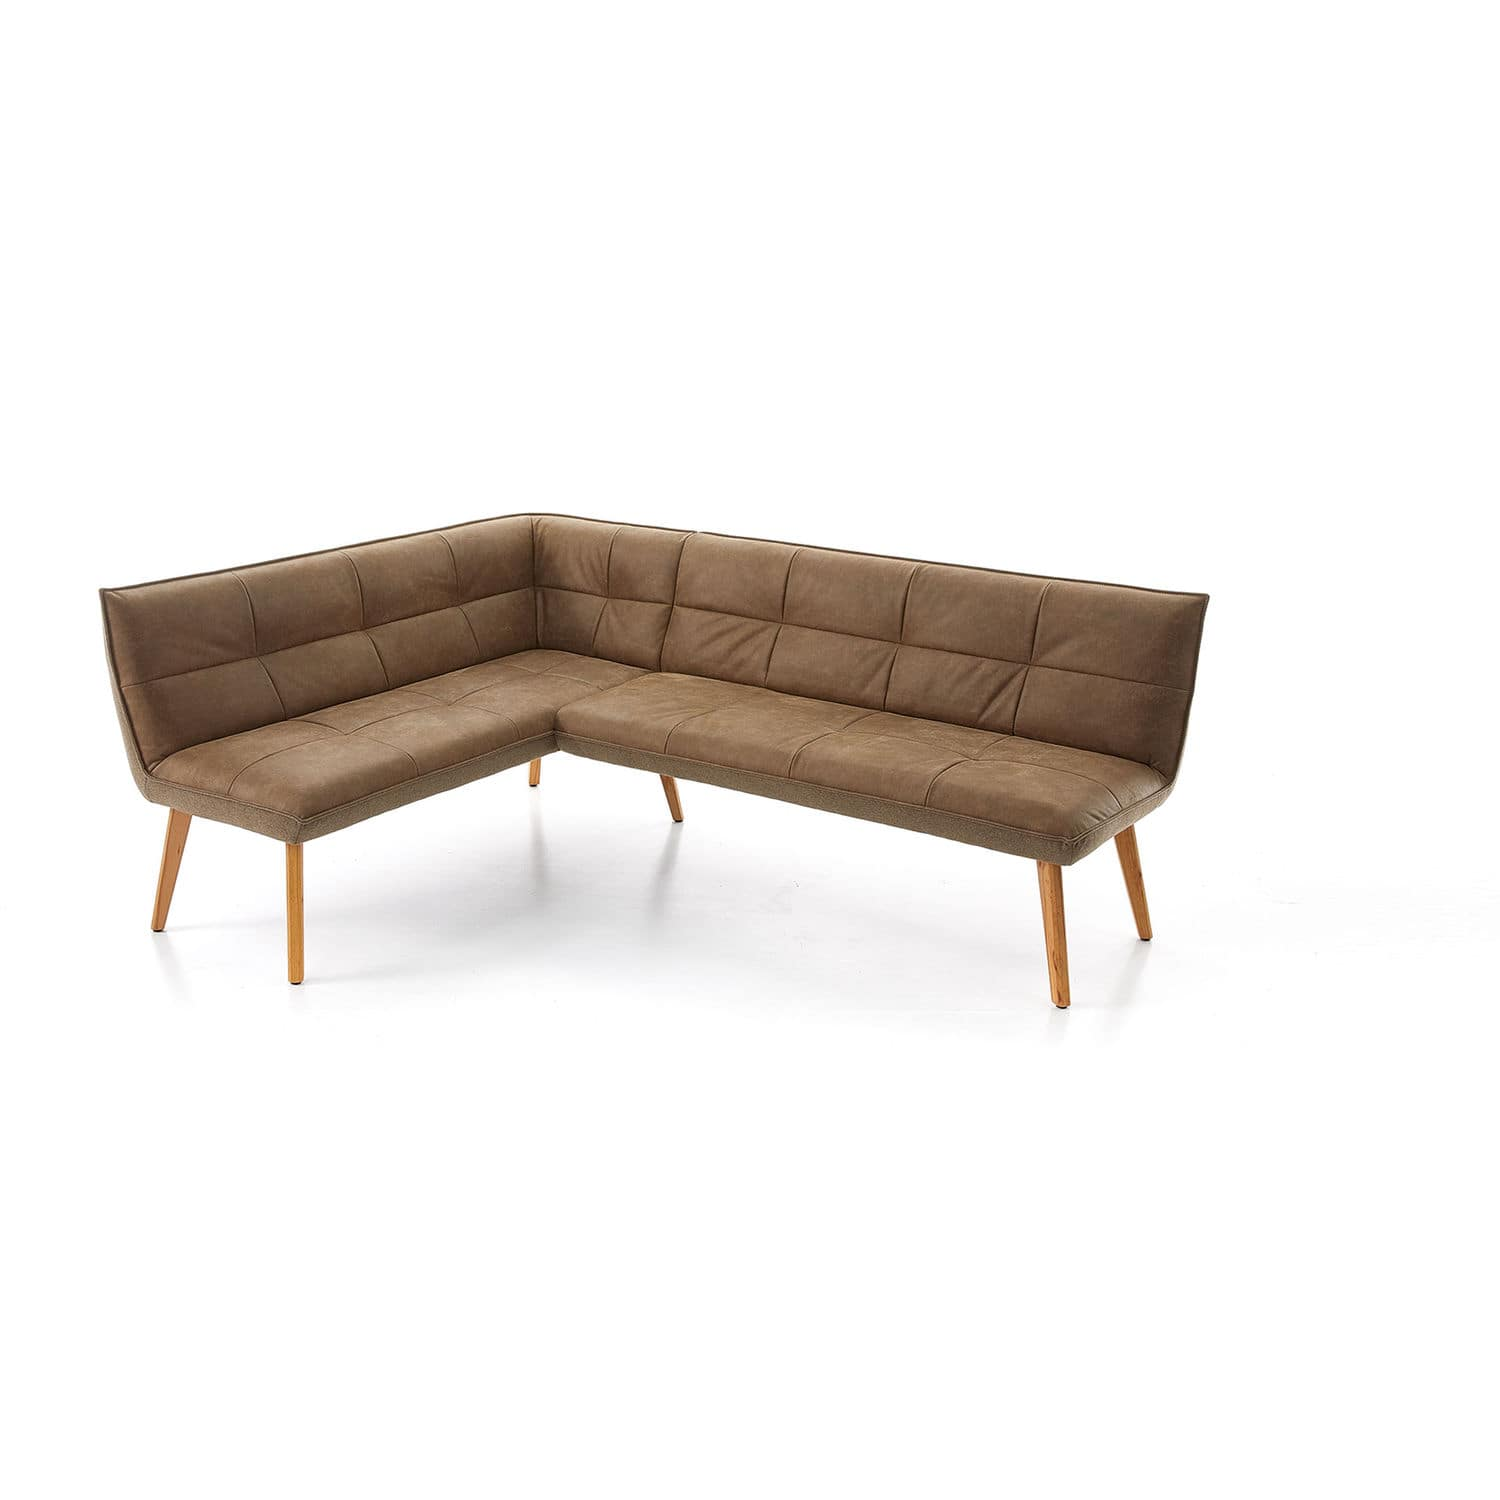 Contemporary Upholstered Bench Leather Wooden With Backrest